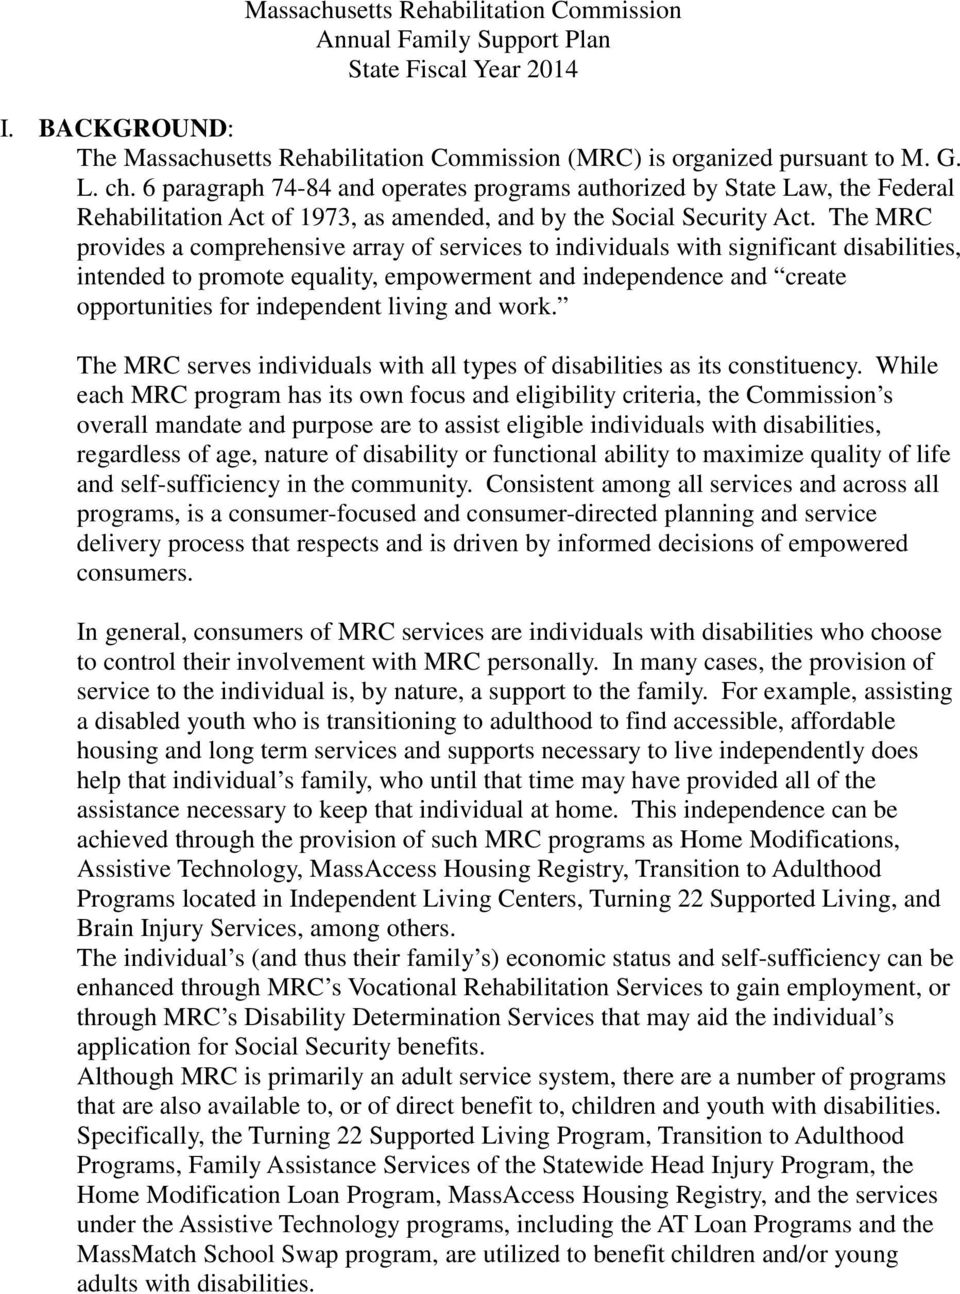 The MRC provides a comprehensive array of services to individuals with significant disabilities, intended to promote equality, empowerment and independence and create opportunities for independent